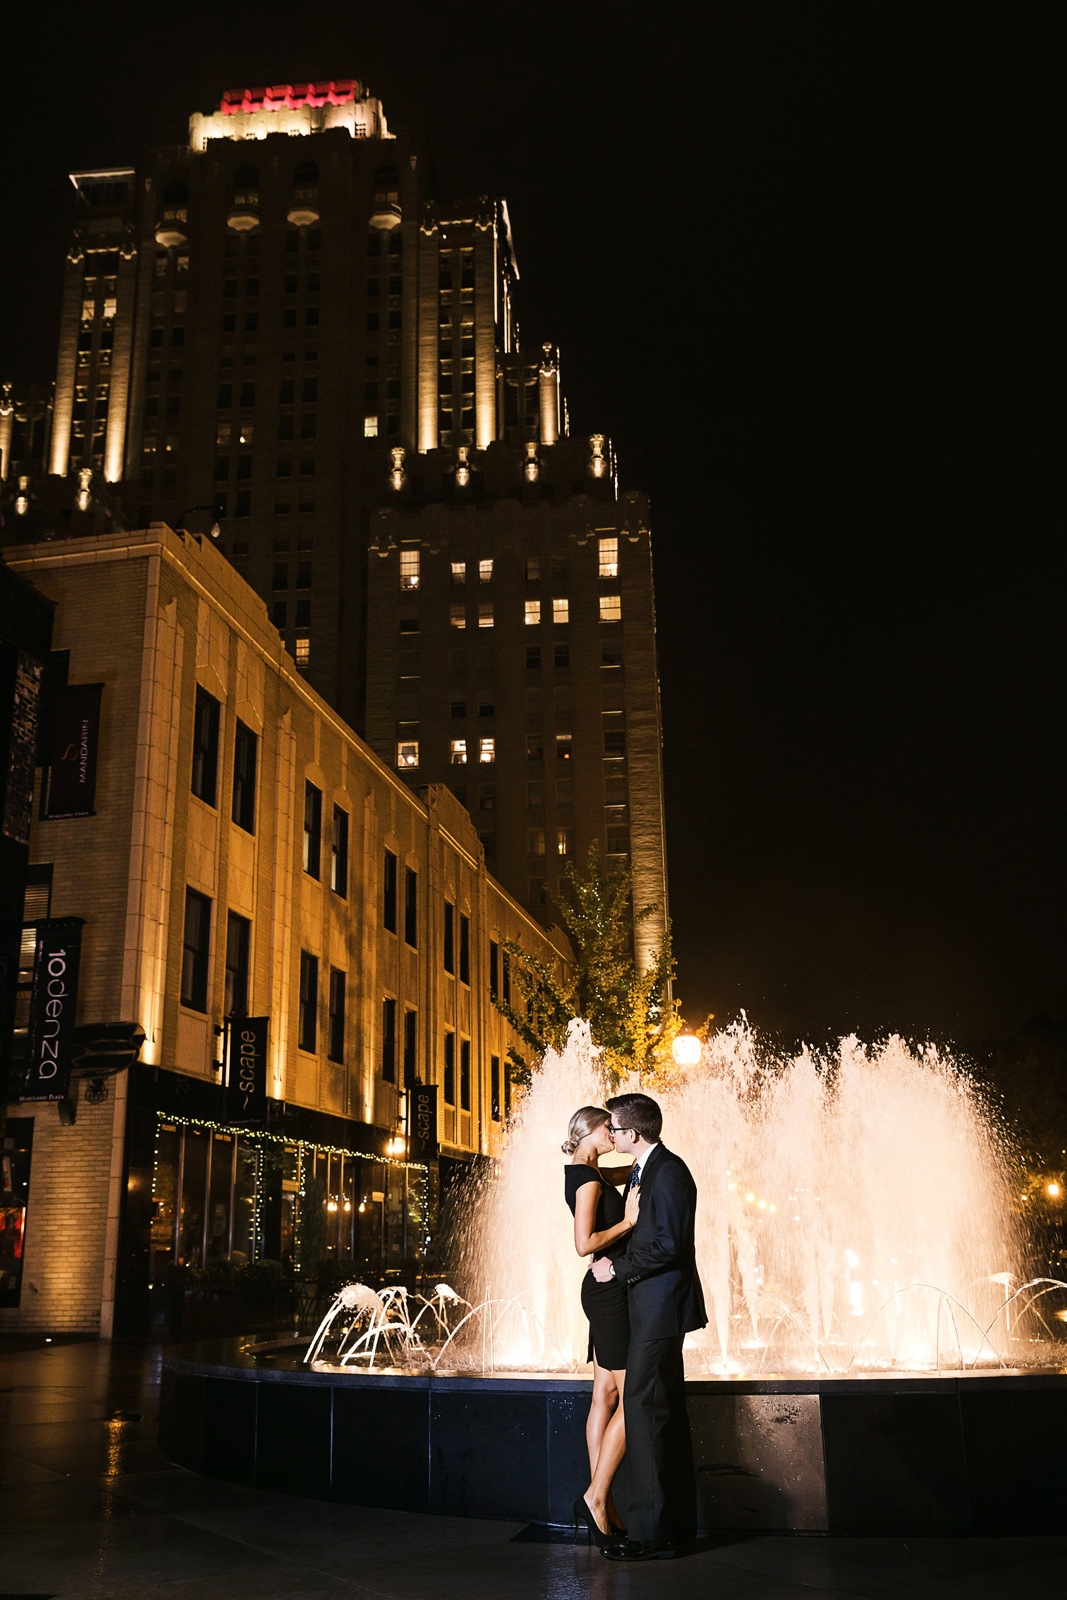 Oldani-Photography-St-Louis-CWE-Central-West-End-Night-Engagement-Photos_20141012_190448.jpg